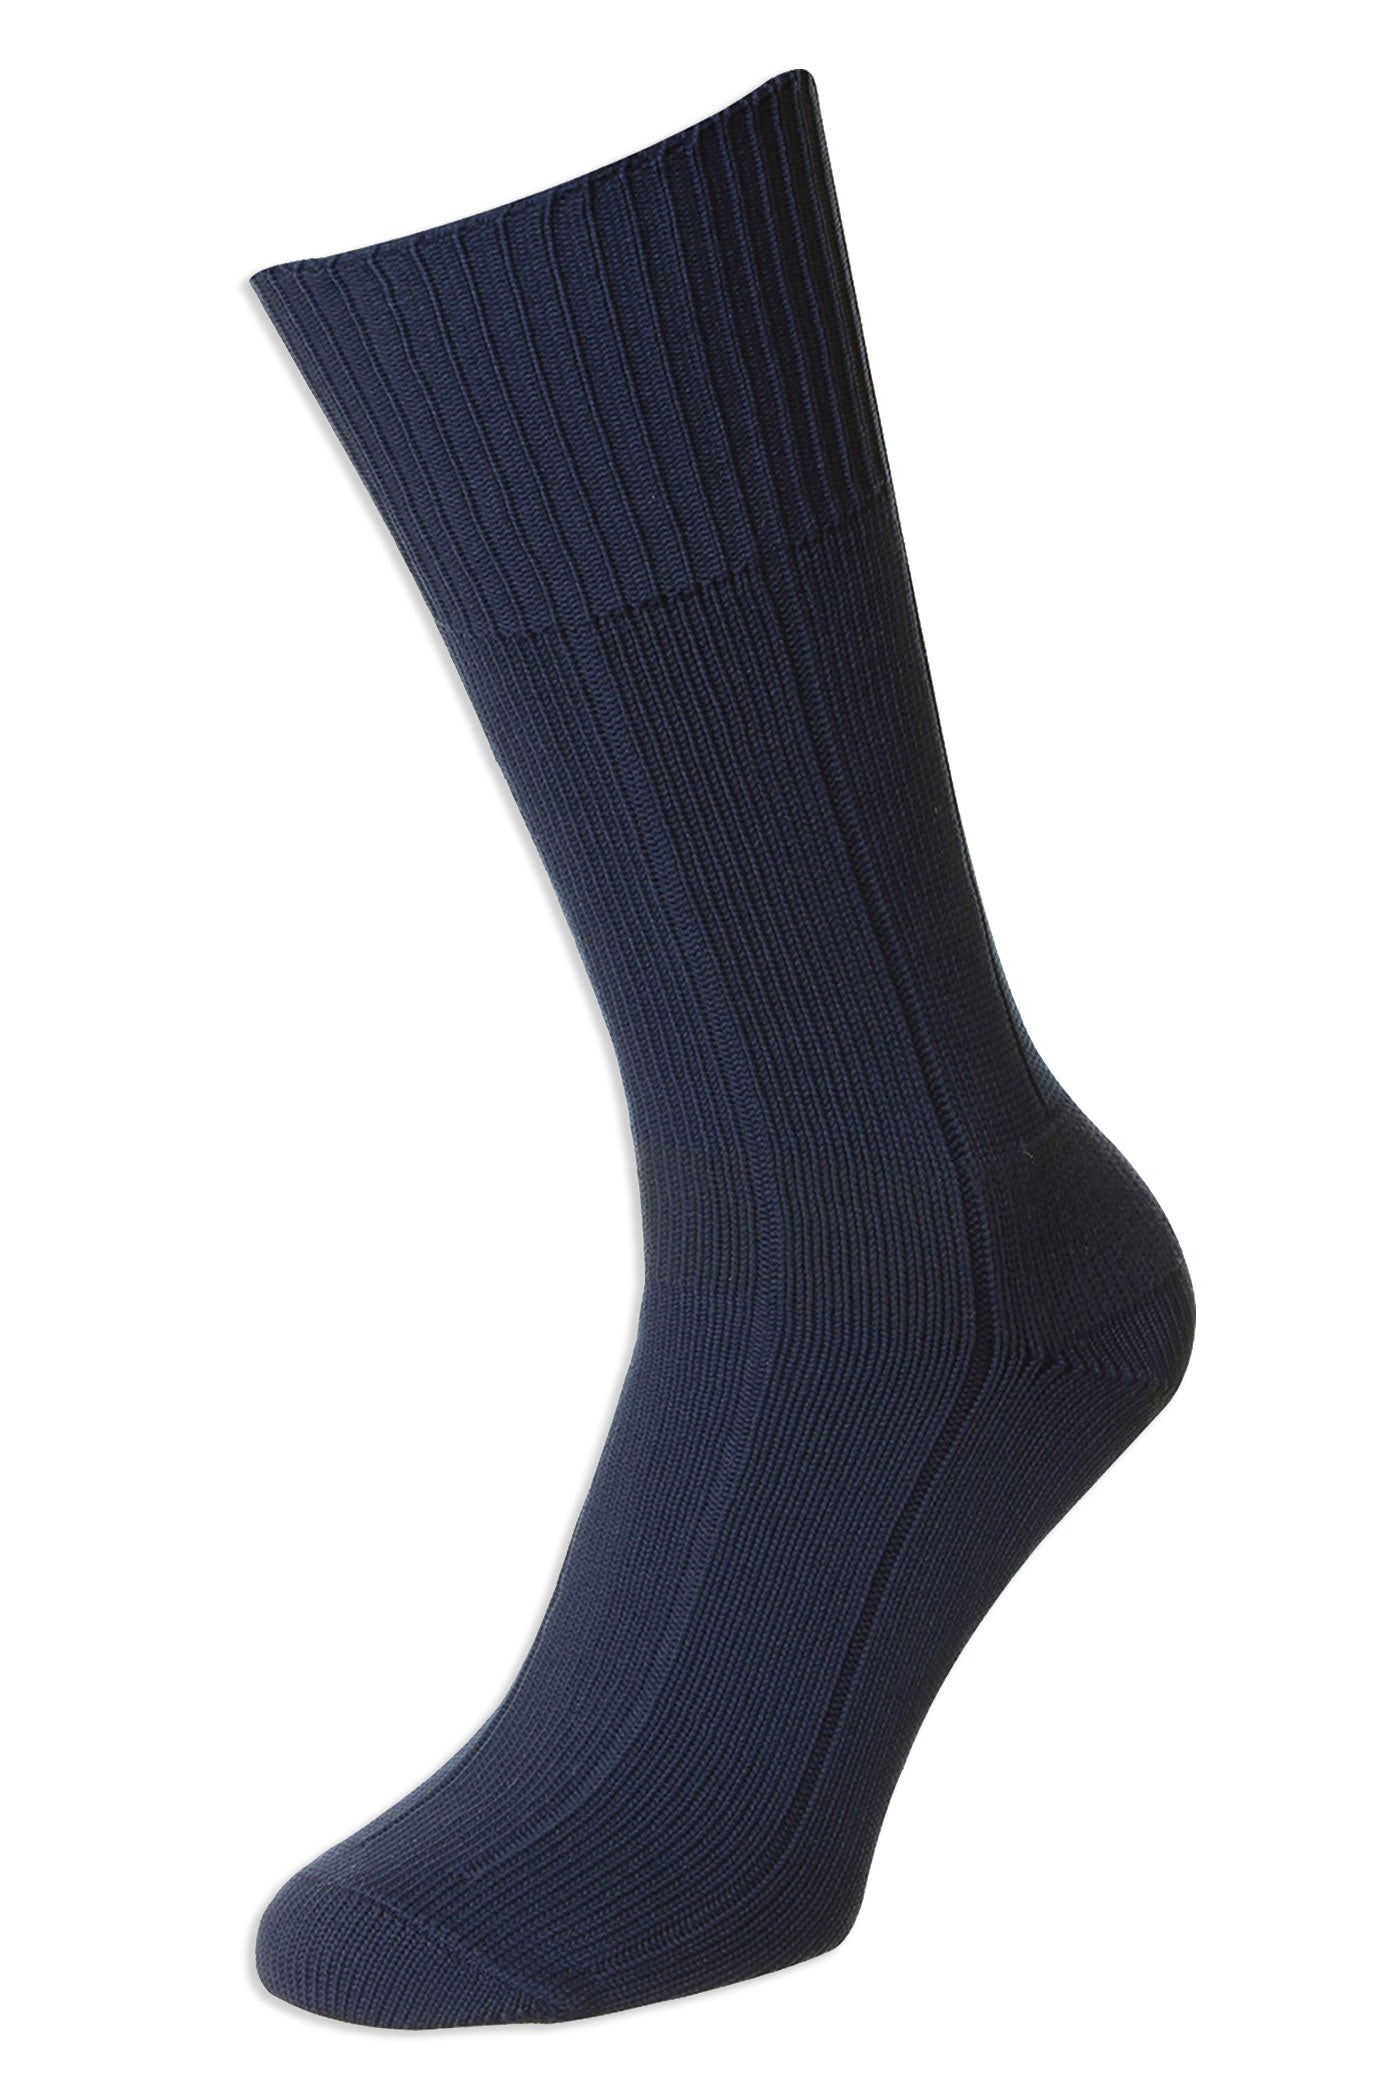 navy HJ Hall Ribbed Pattern Indestructible Sock